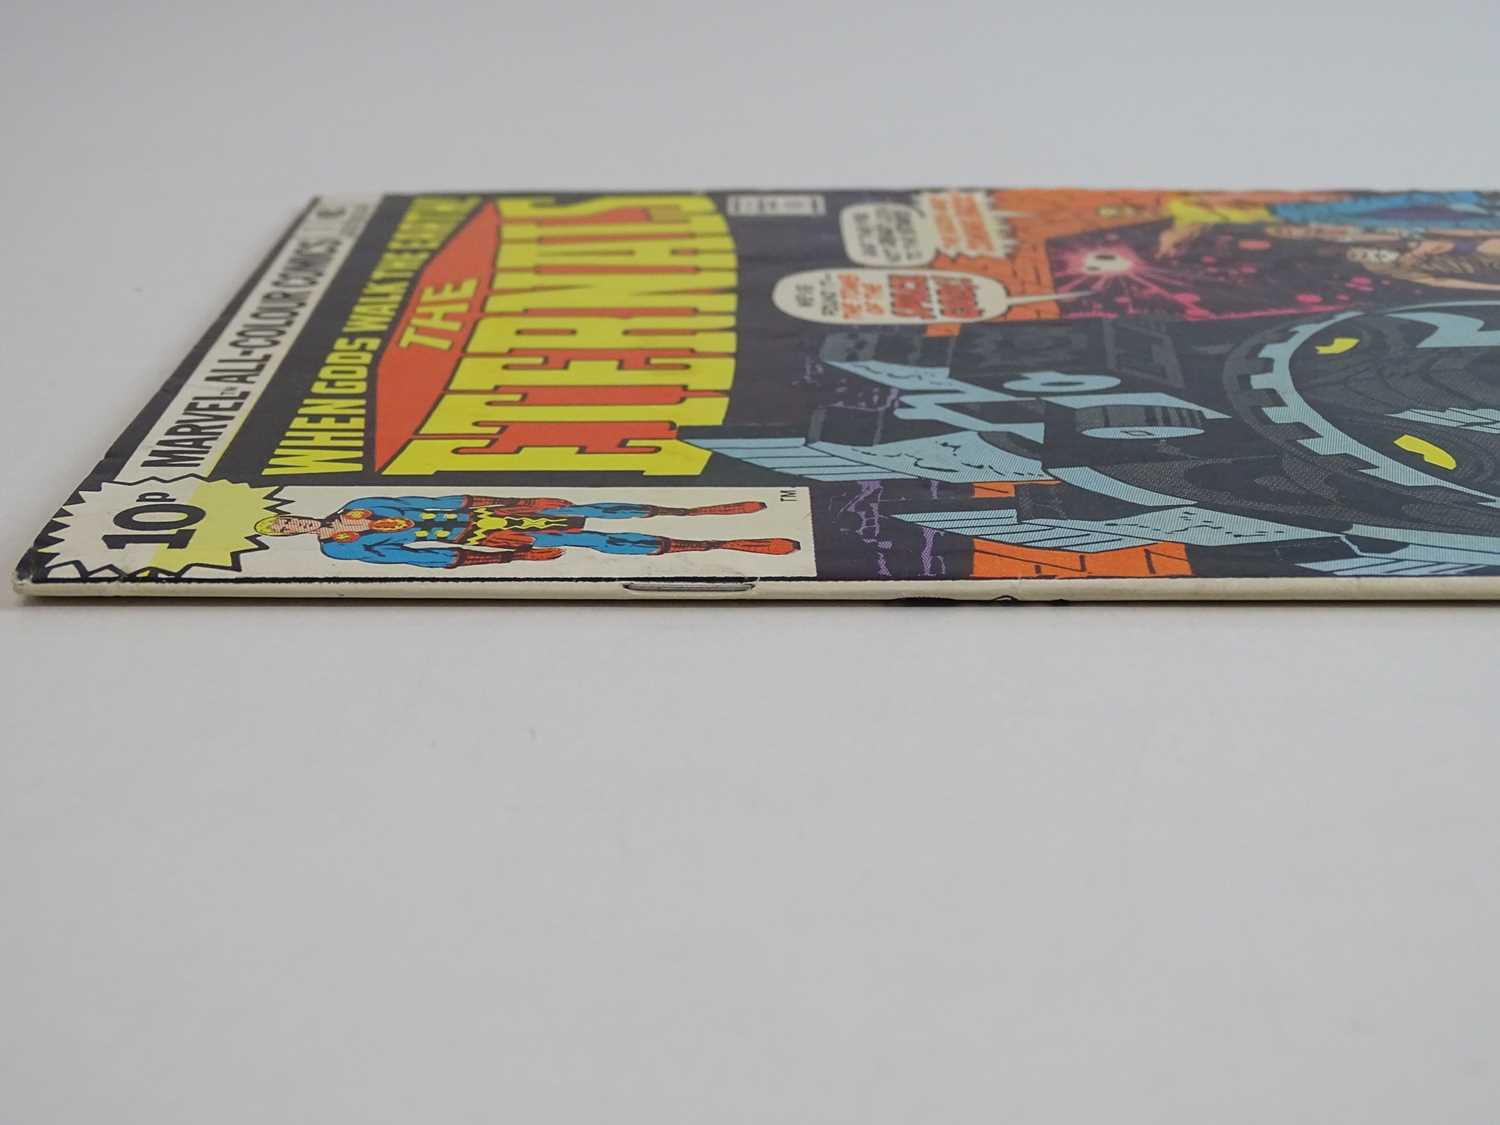 ETERNALS #1 - (1976 - MARVEL - UK Price Variant) - HOT Key book + Origin and First appearances of - Image 8 of 9